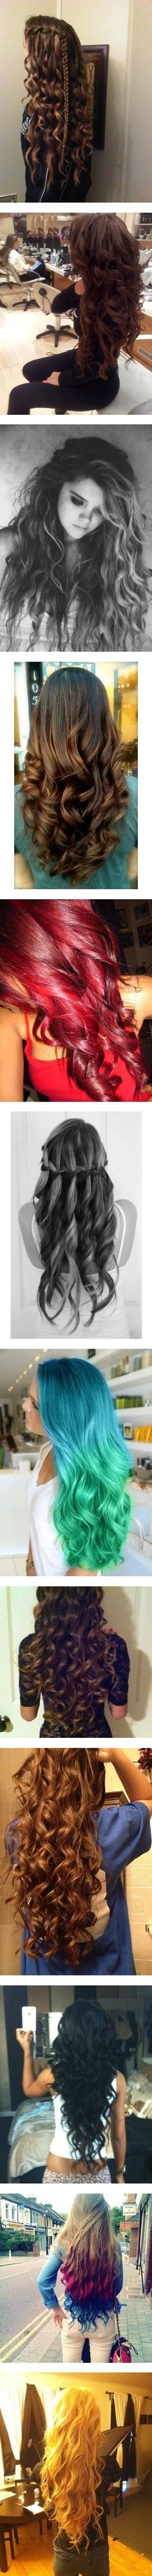 Holy balls they make curly hair look good! Wish mine would do this